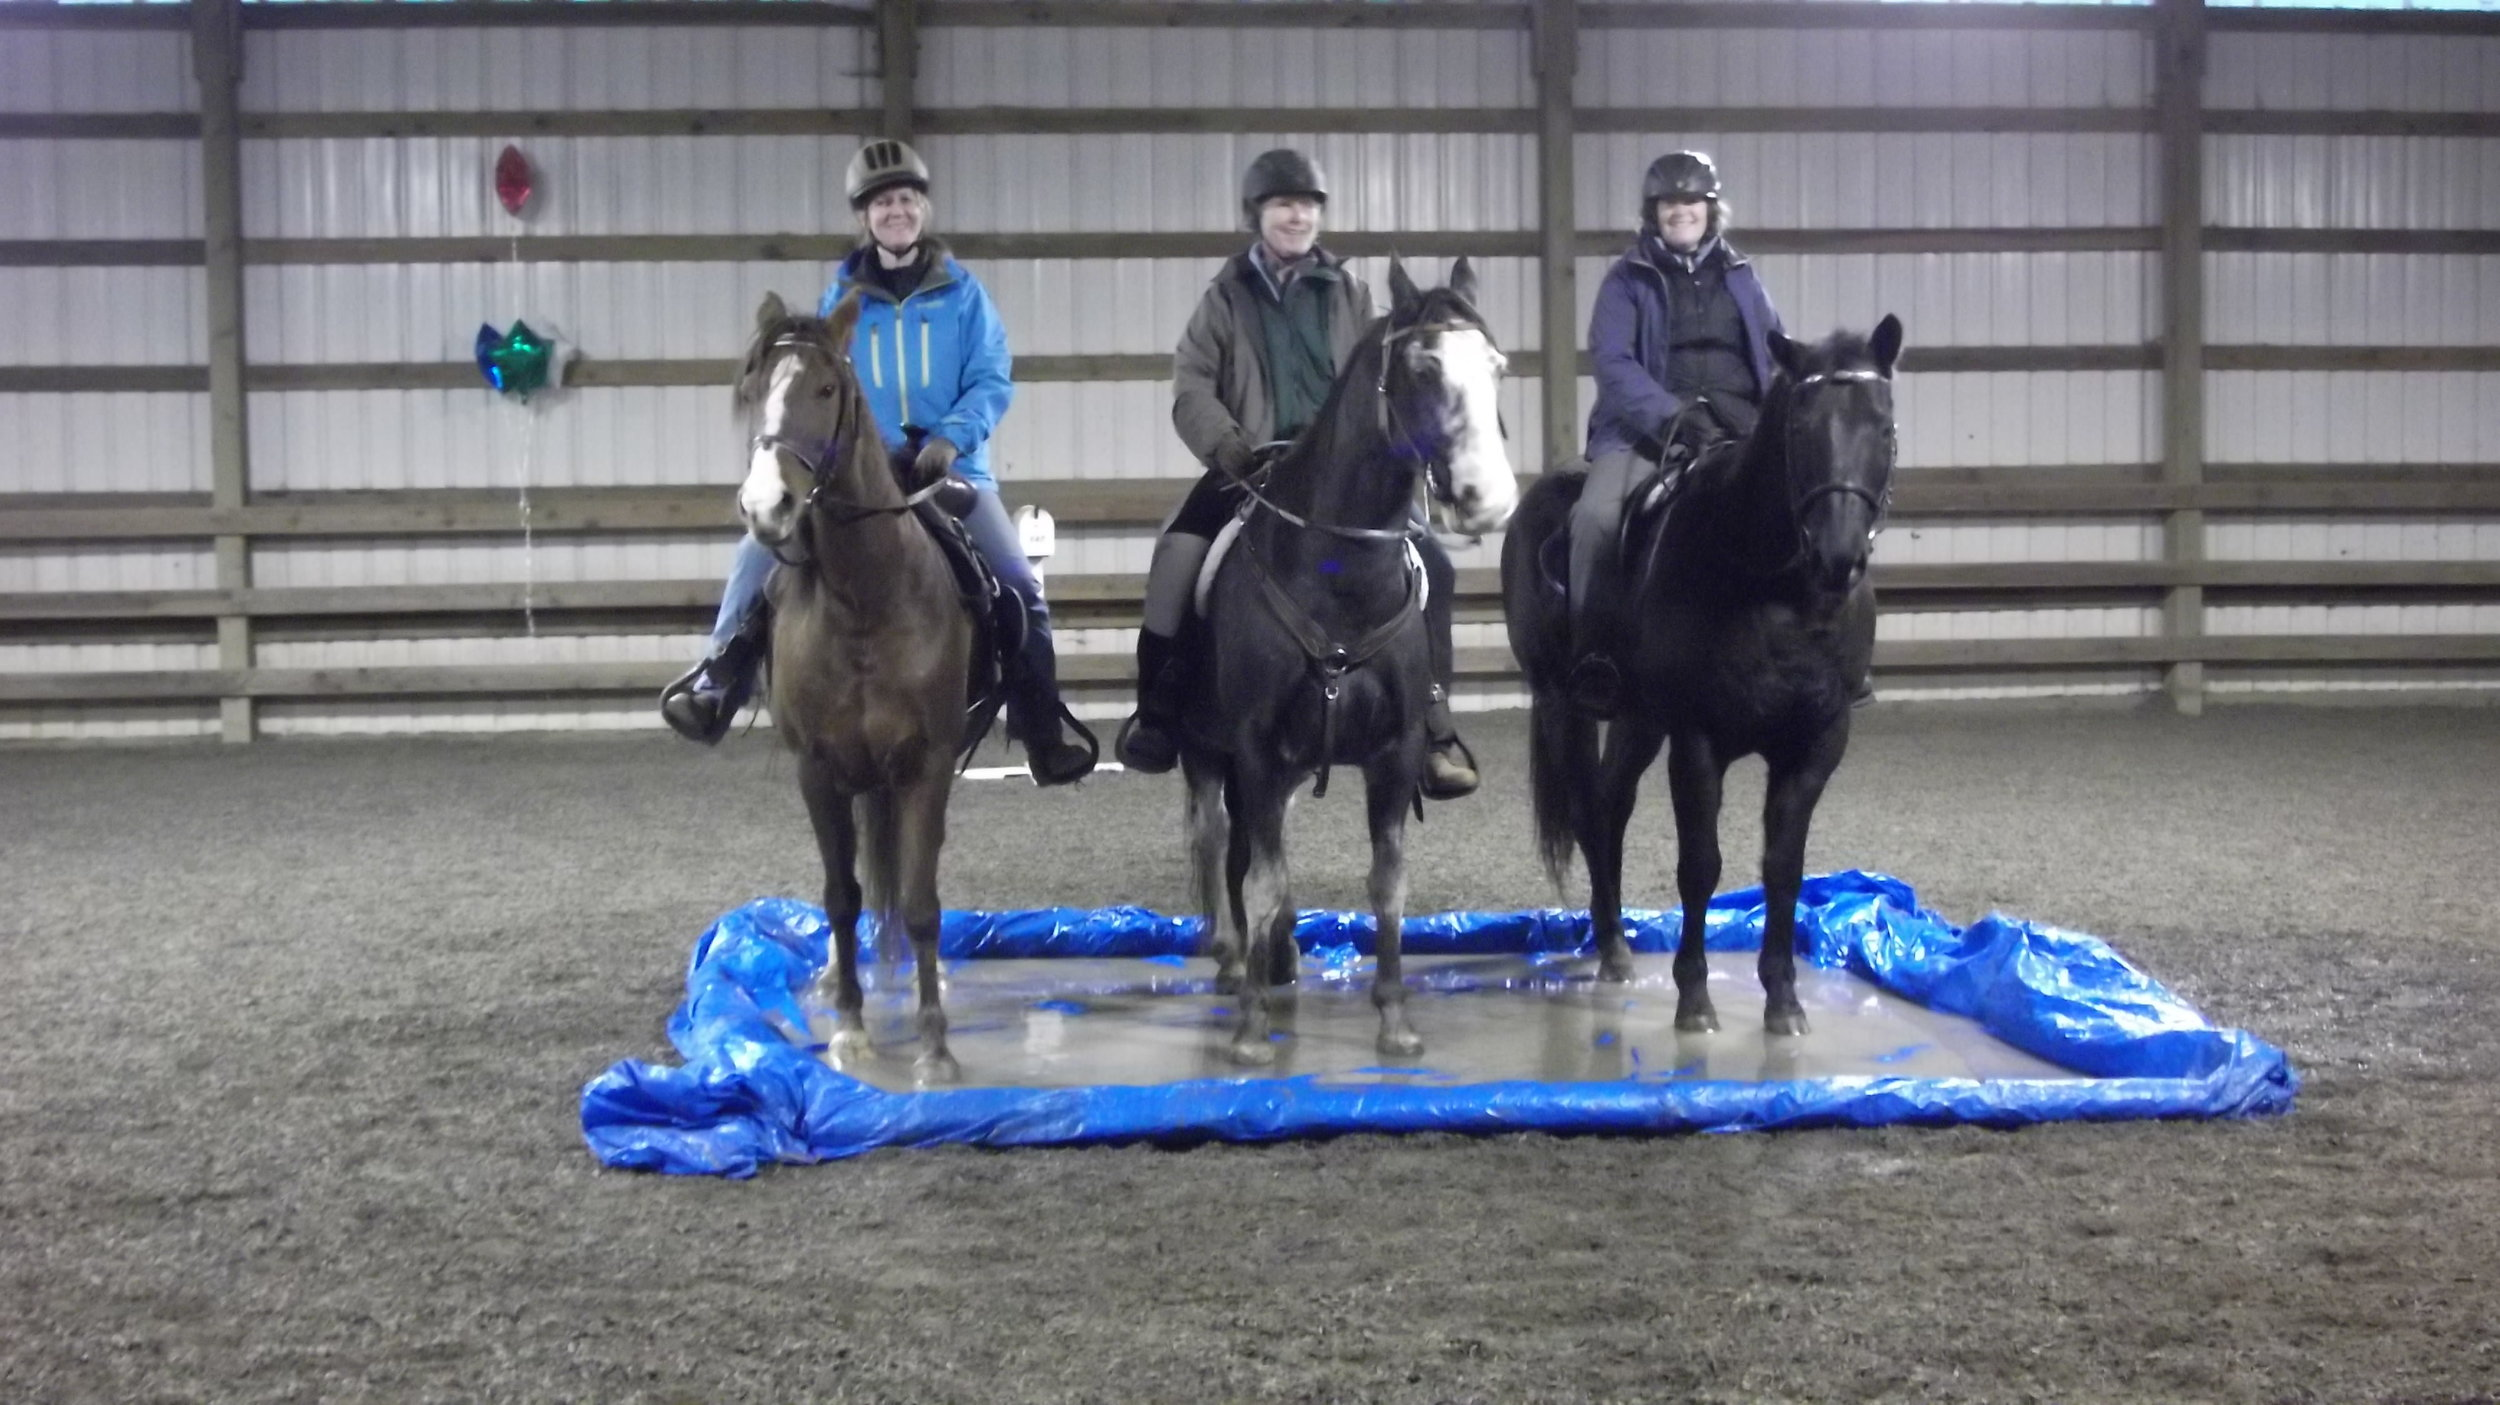 Versatility Obstacle Clinic 063.JPG